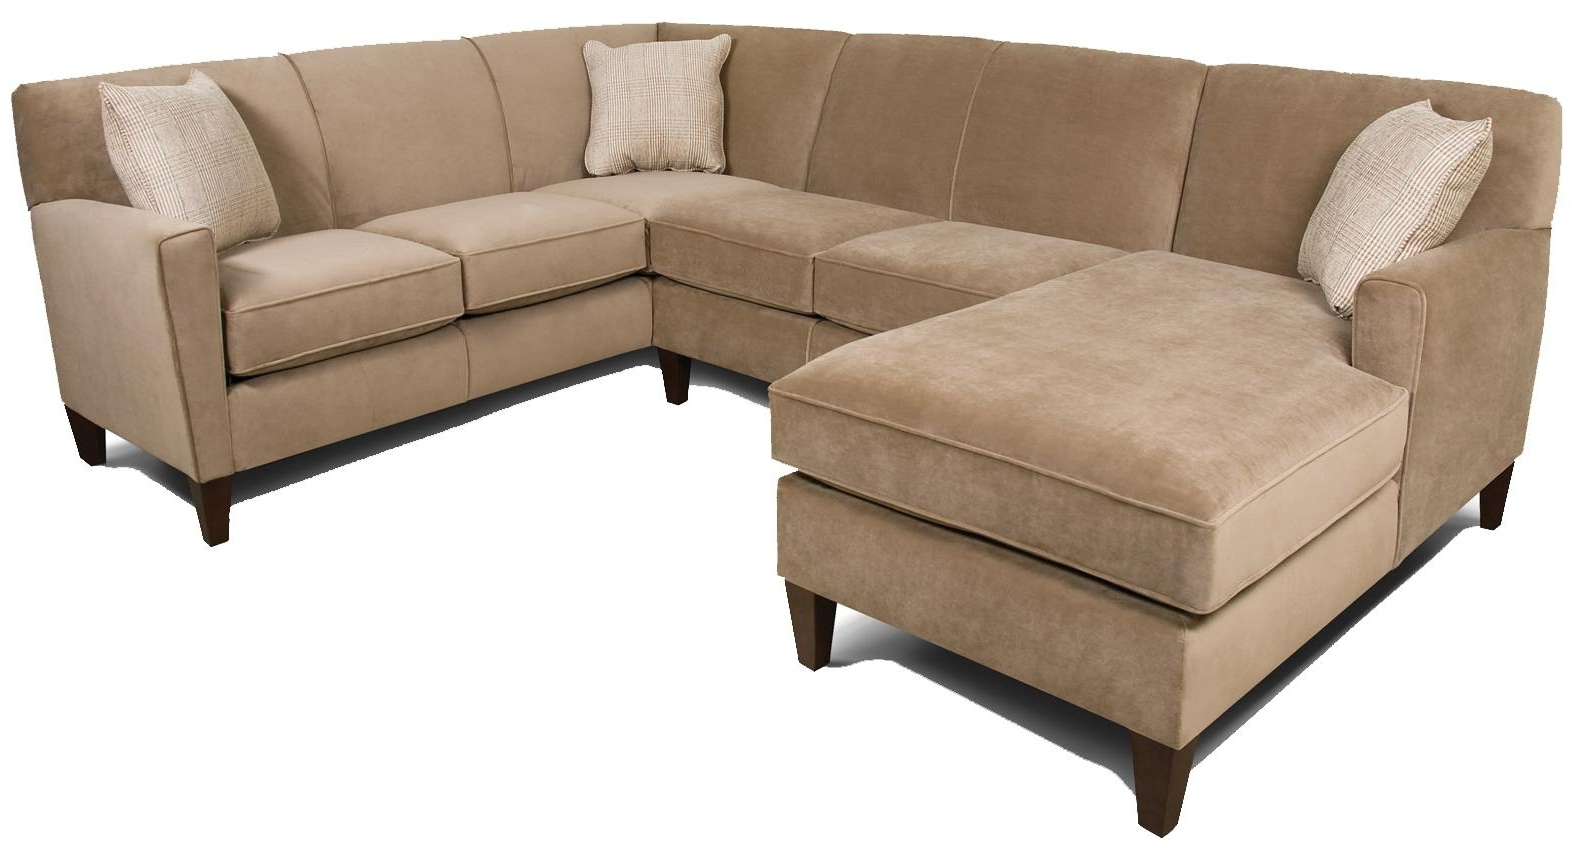 England Collegedale Contemporary 3 Piece Sectional Sofa With Laf Regarding Latest Green Bay Wi Sectional Sofas (View 6 of 20)